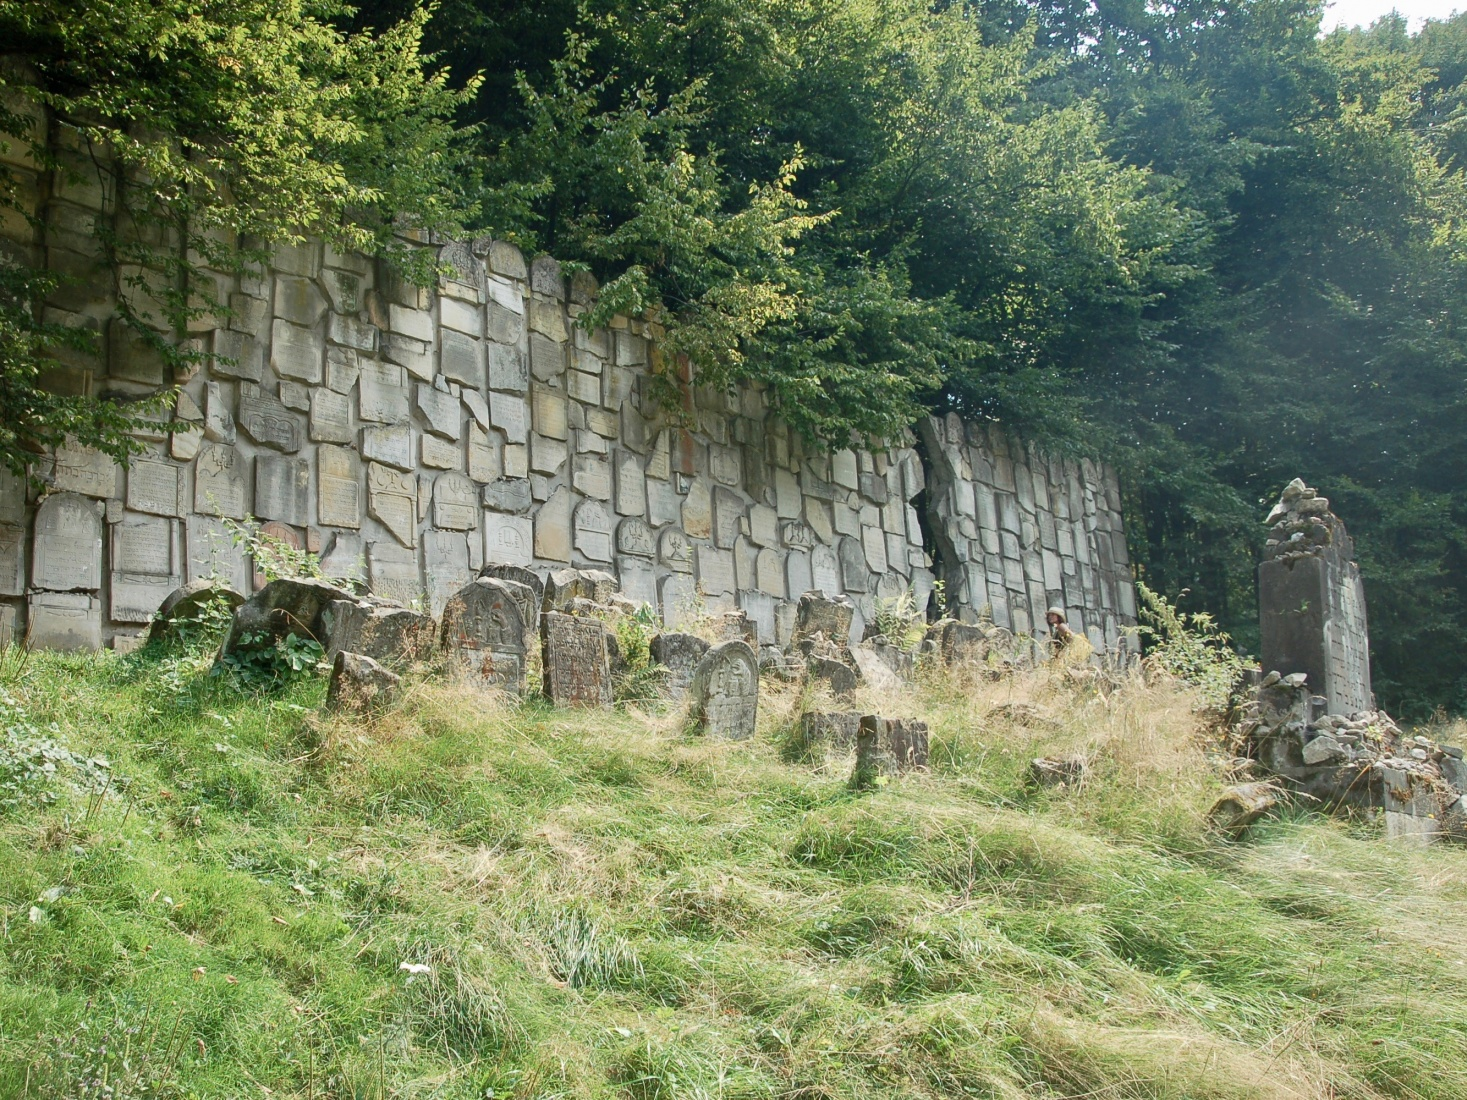 The Jewish cemetery of Kazimierz Dolny, Poland, in a forest on a hill outside the center.